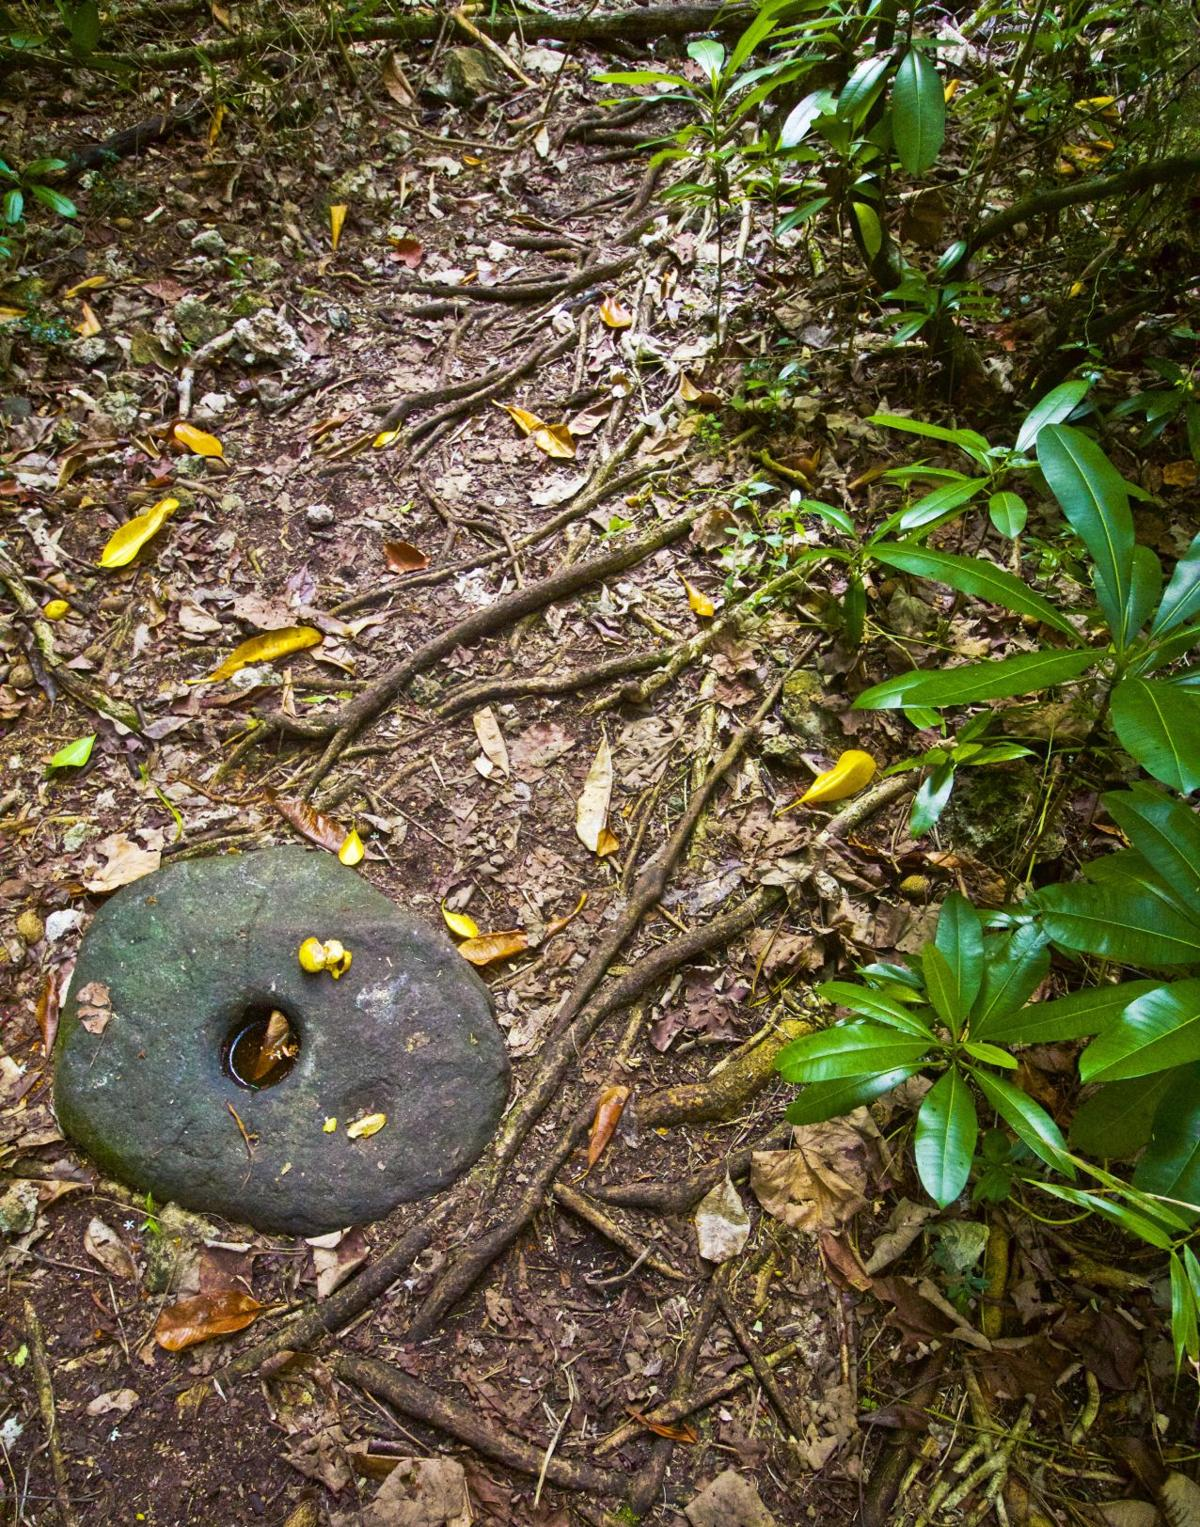 Hike into history: Nine Spots preserving Guam's past